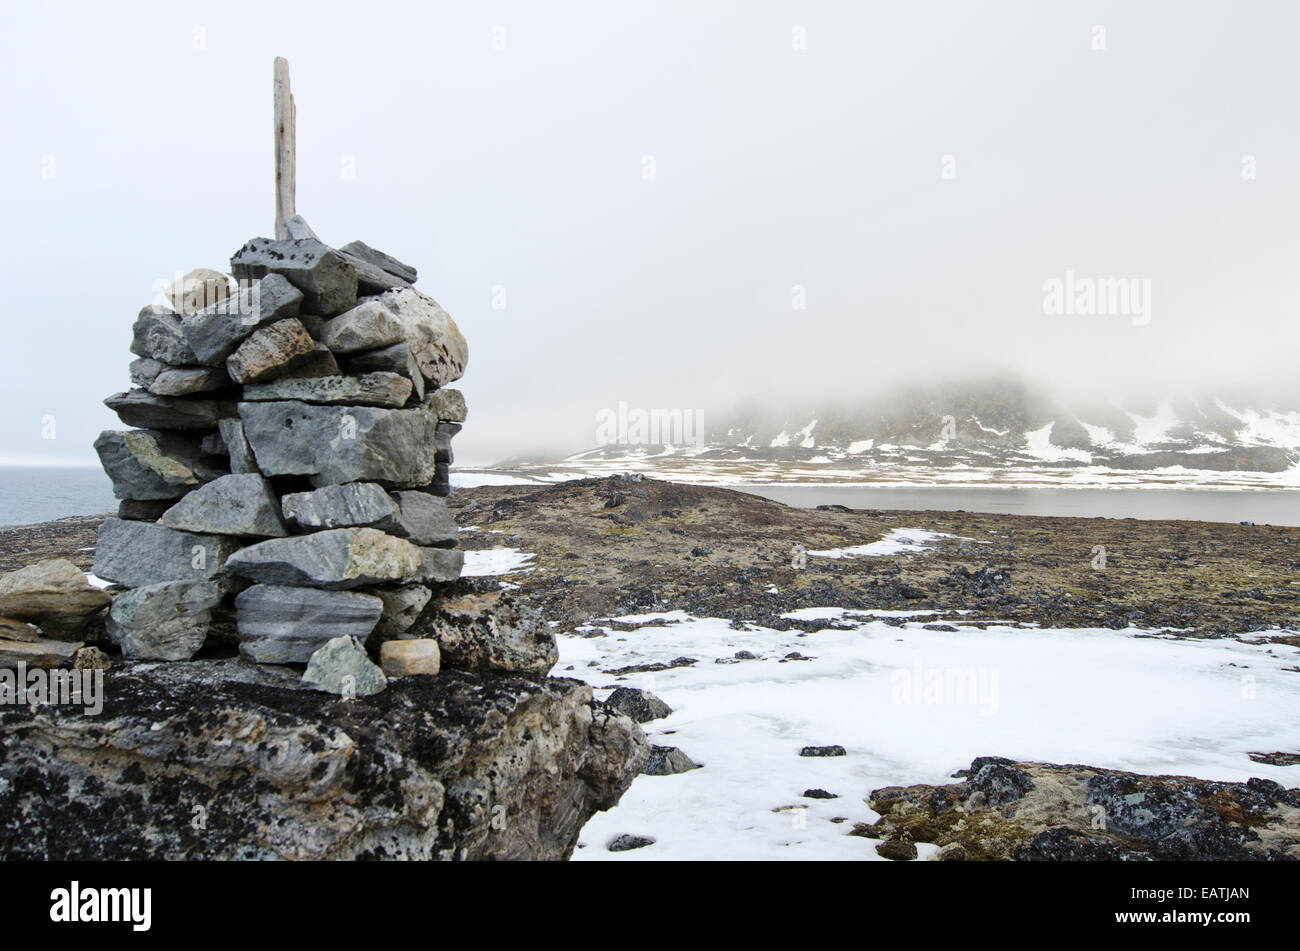 Grave cairn in the Bay of Sorrow near Magdalenefjorden. - Stock Image